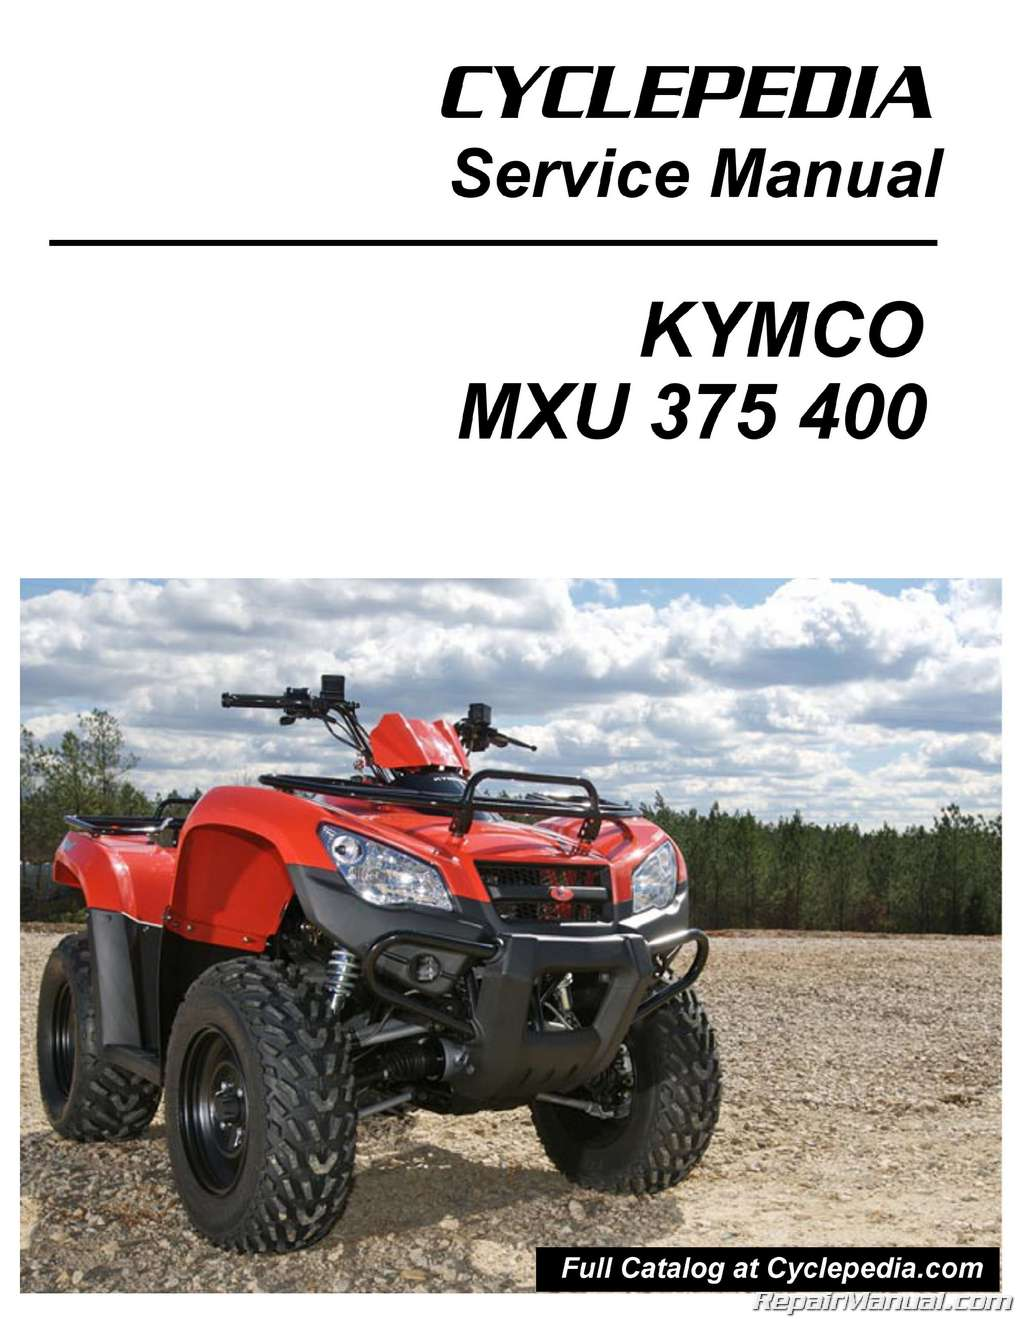 kymco mxu 375 400 atv service manual printed by cyclepedia rh repairmanual com service manual atwood 3500 series service manual advance bed